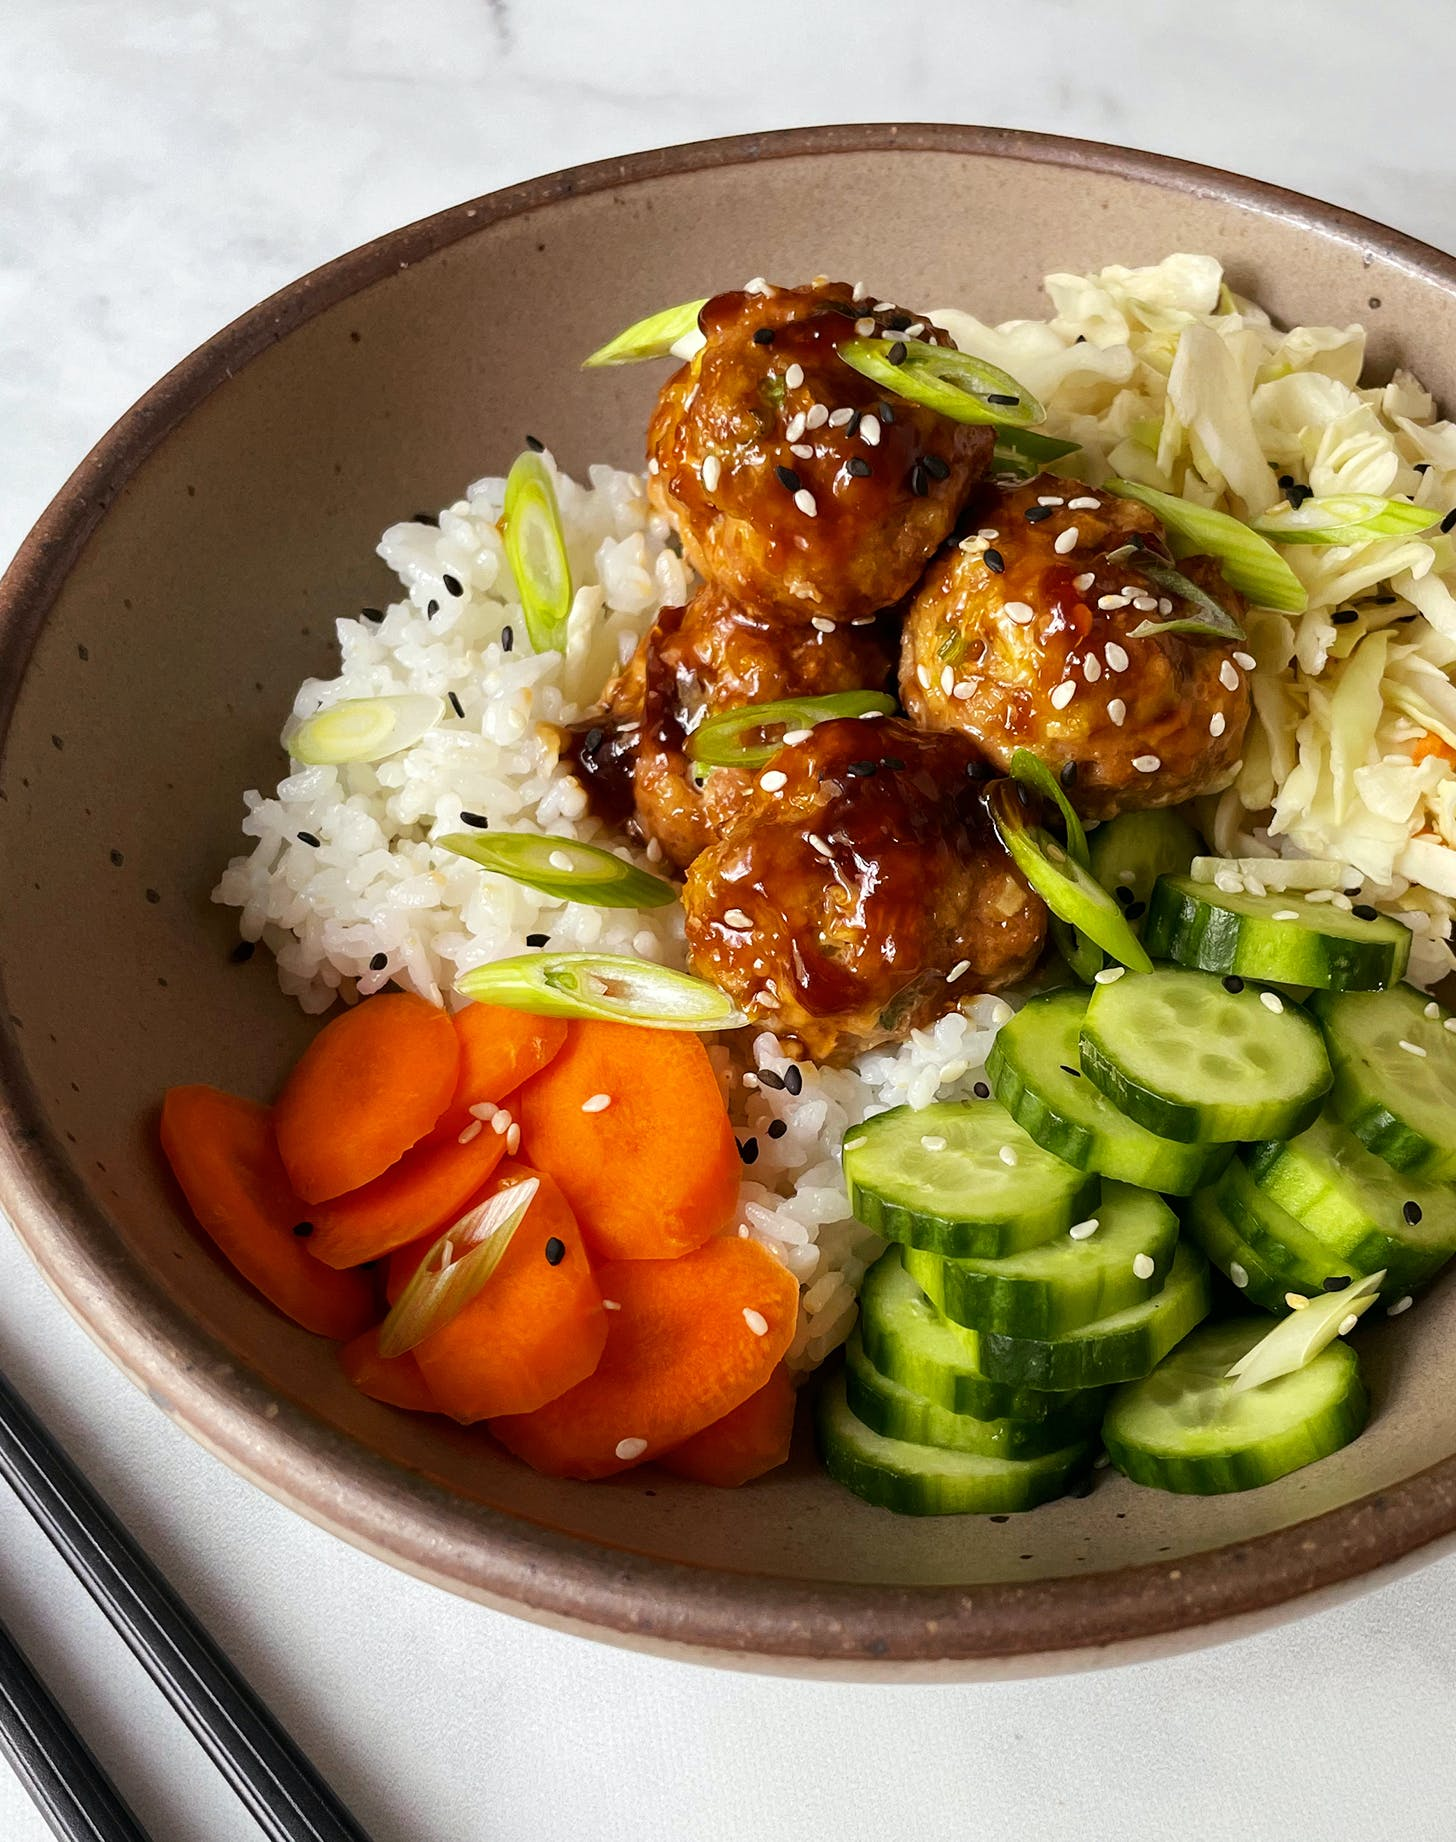 Ginger-Scallion Chicken Meatballs with a Sesame-Soy Glaze